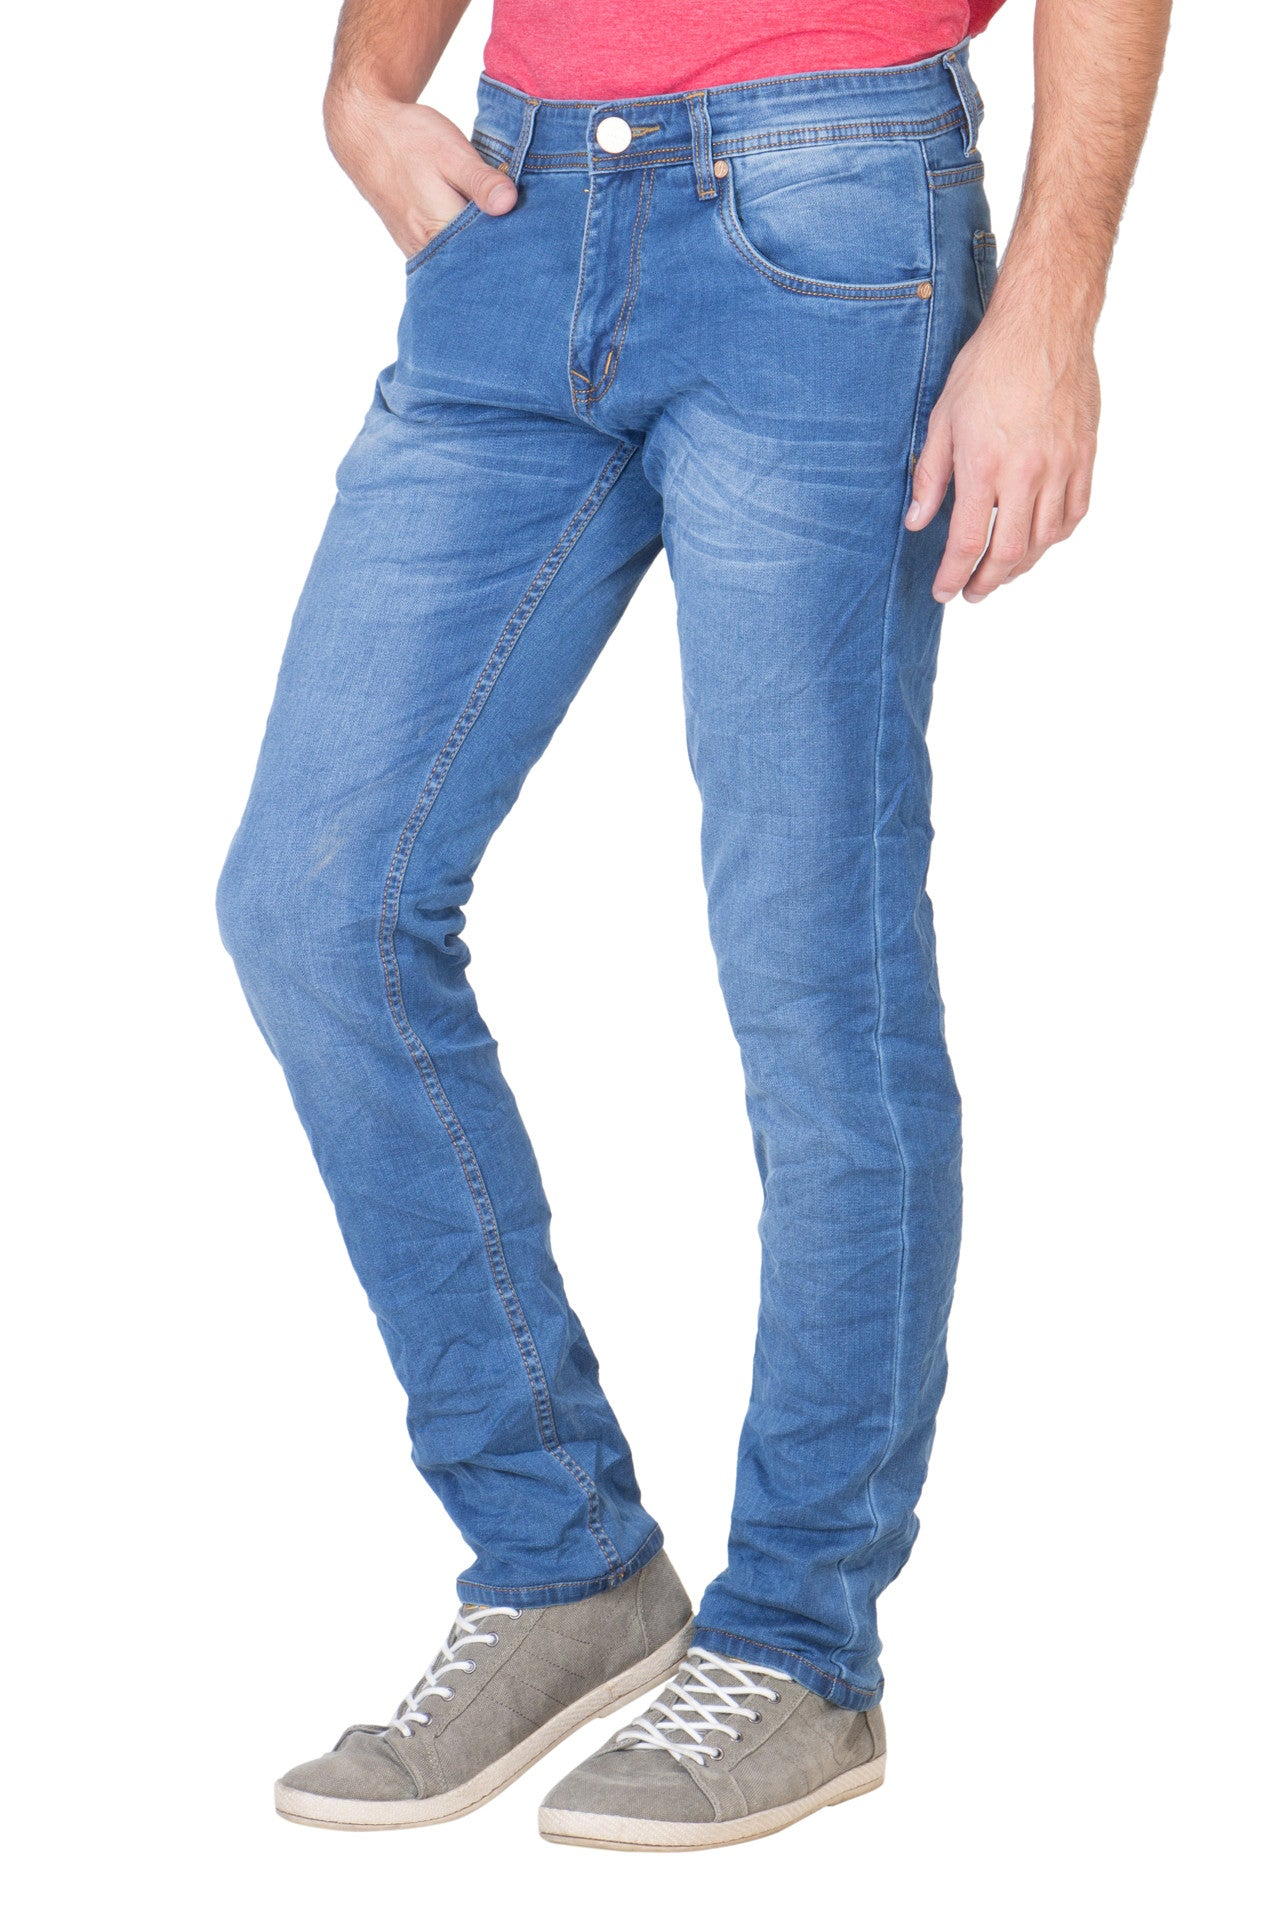 KROSSSTITCH Men s Slim Fit Denim Blue Jeans – Krossstitch 3784a3ea923